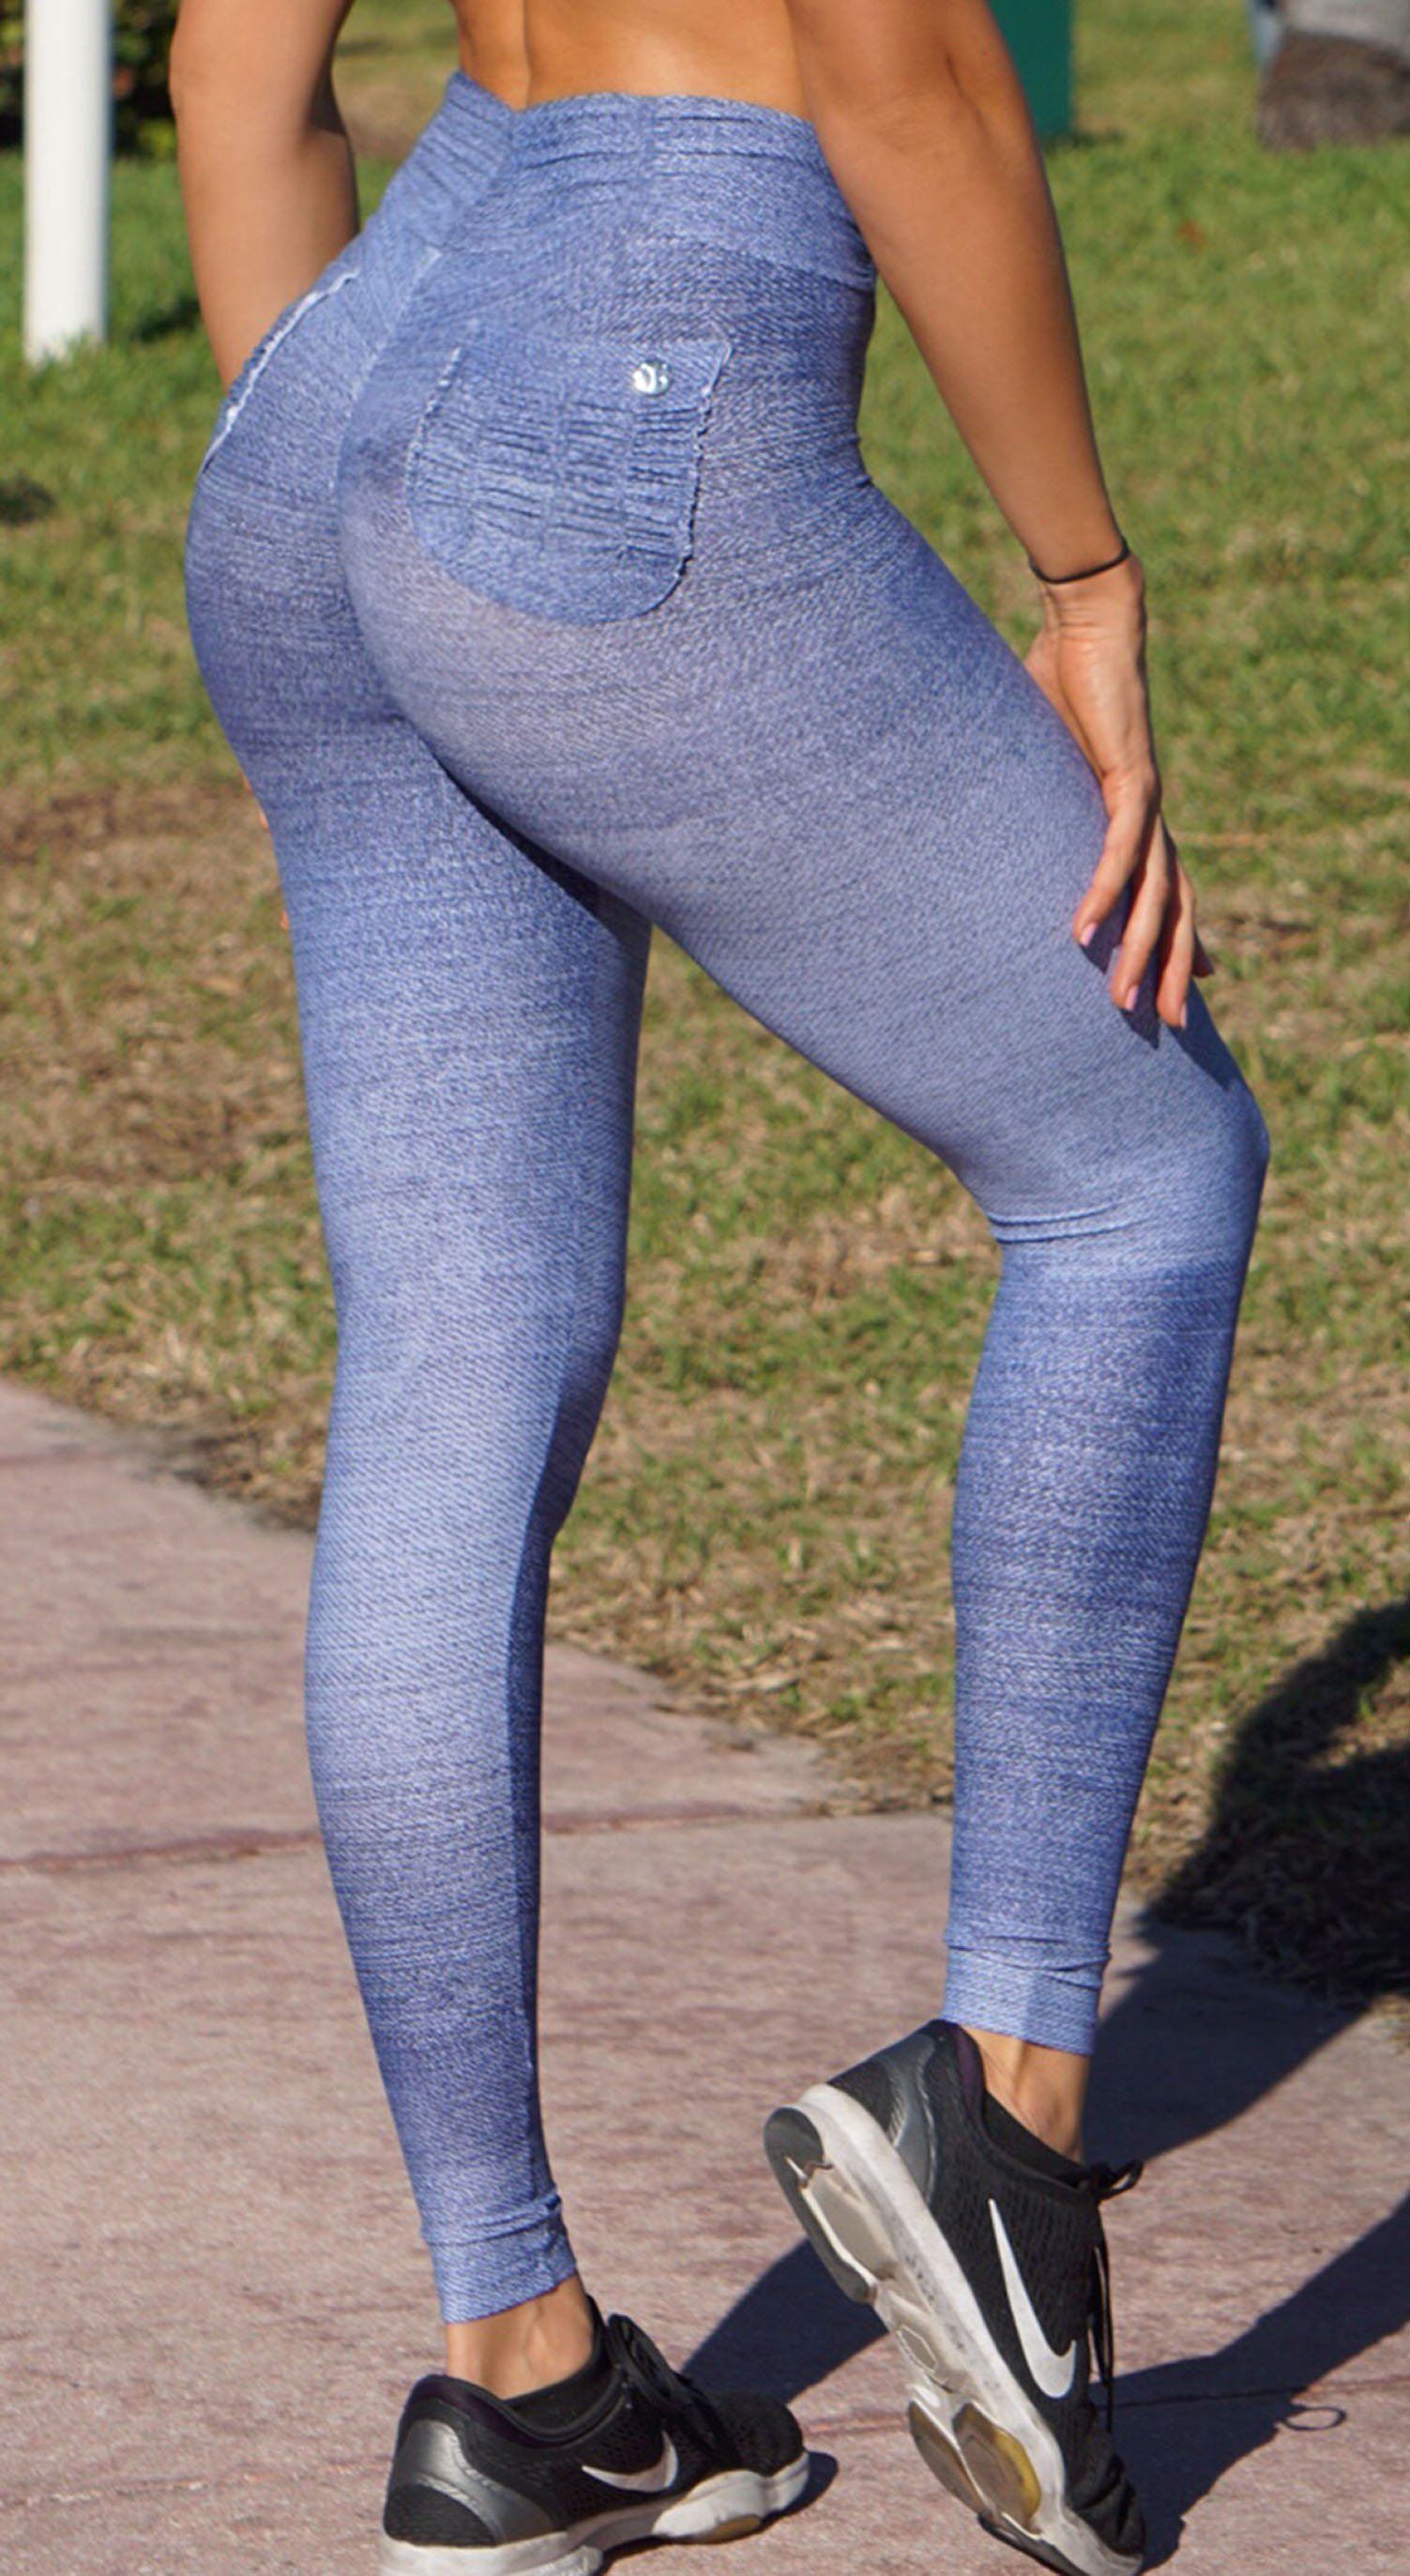 Brazilian Workout Legging - Booty Up Pockets Fake Jeans